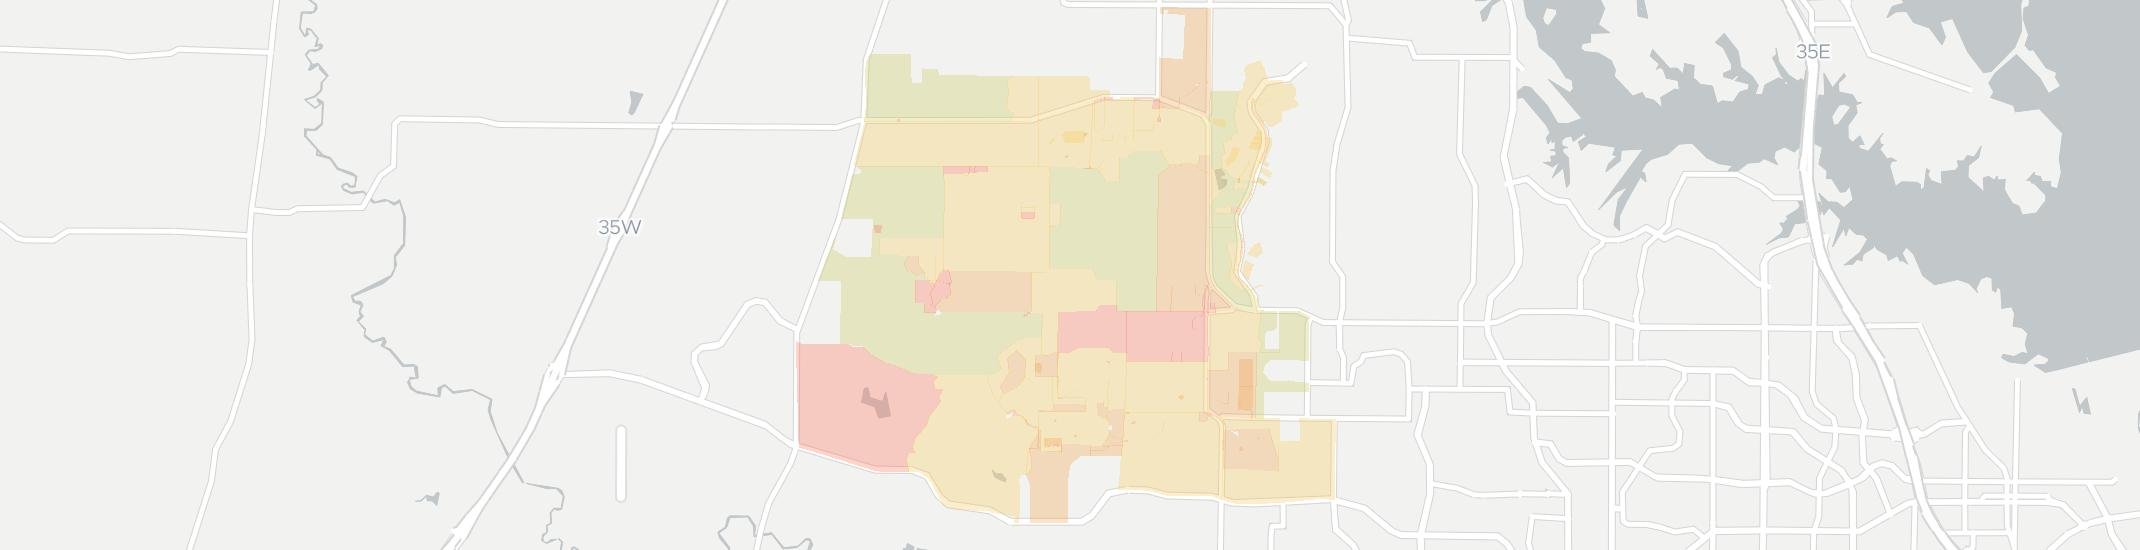 Bartonville Internet Competition Map. Click for interactive map.